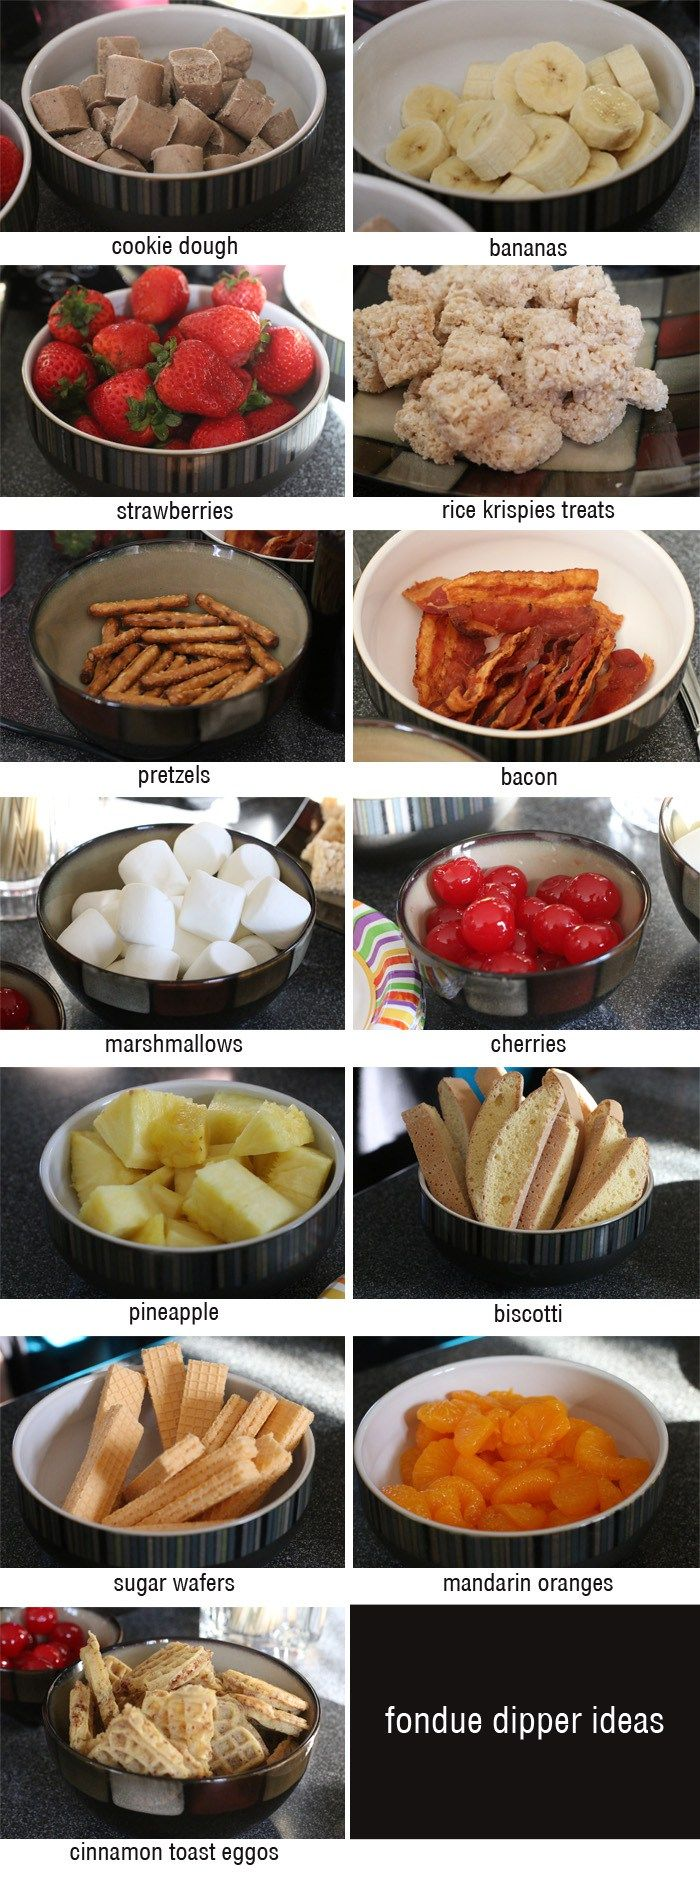 The Best Chocolate Fondue Dipper Ideas for your next party via Chrystina Noel.